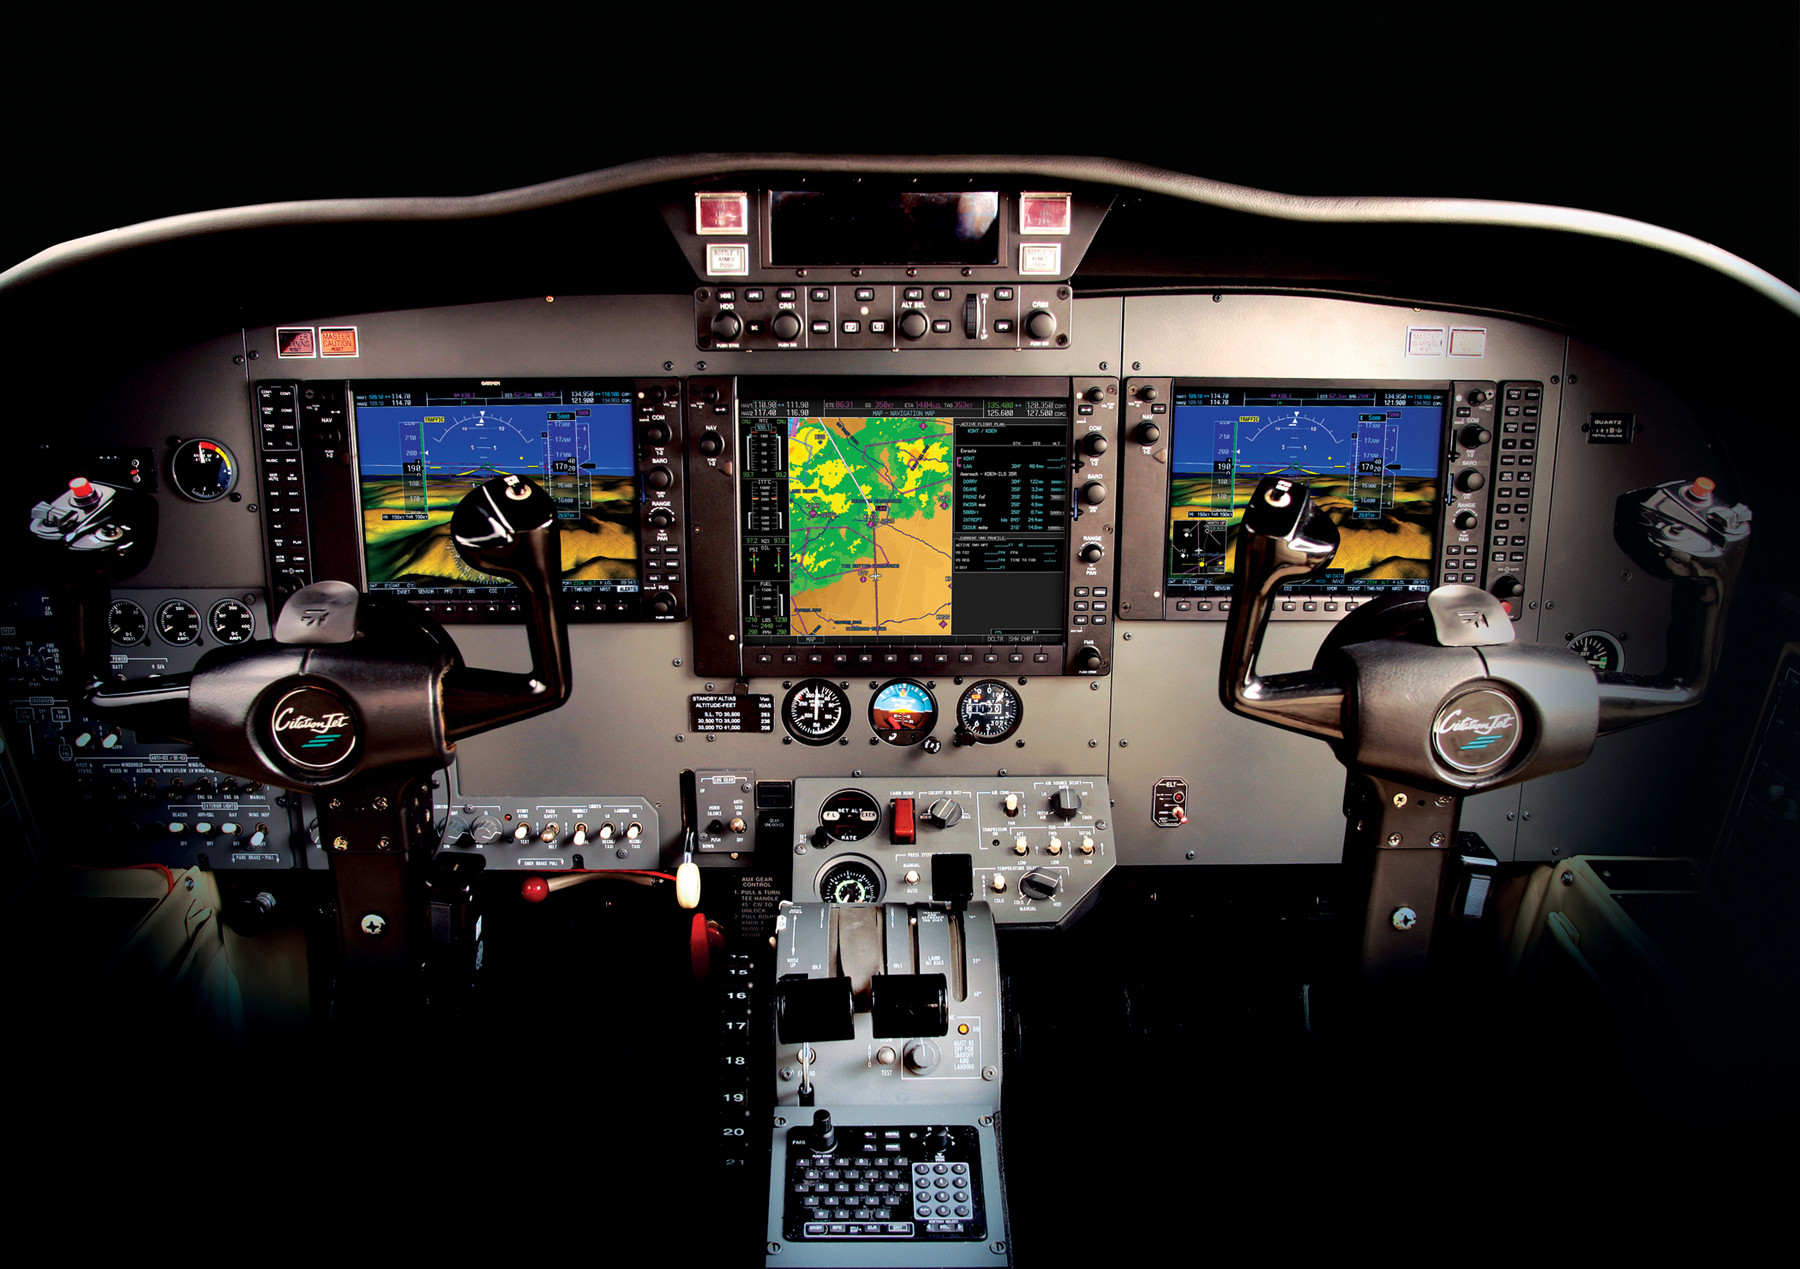 Airplane Avionics What Is The Purpose Of Multiple Autopilots? - Aviation